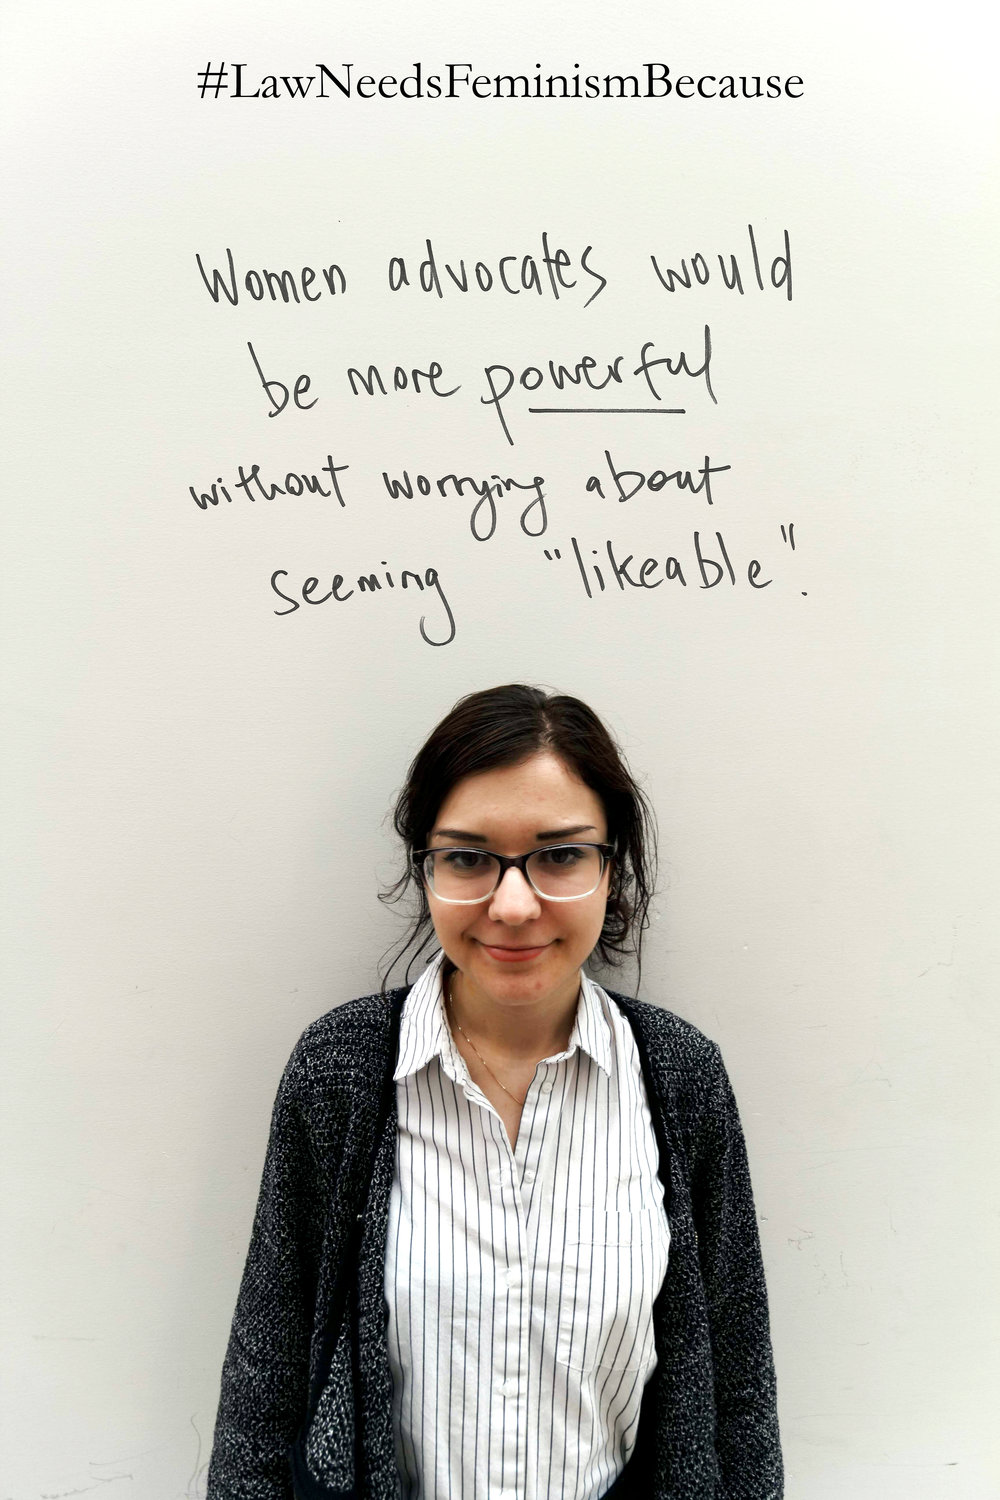 """Law Needs Feminism Because  """"Women advocates would be more powerful without worrying about seeming 'likeable'""""."""